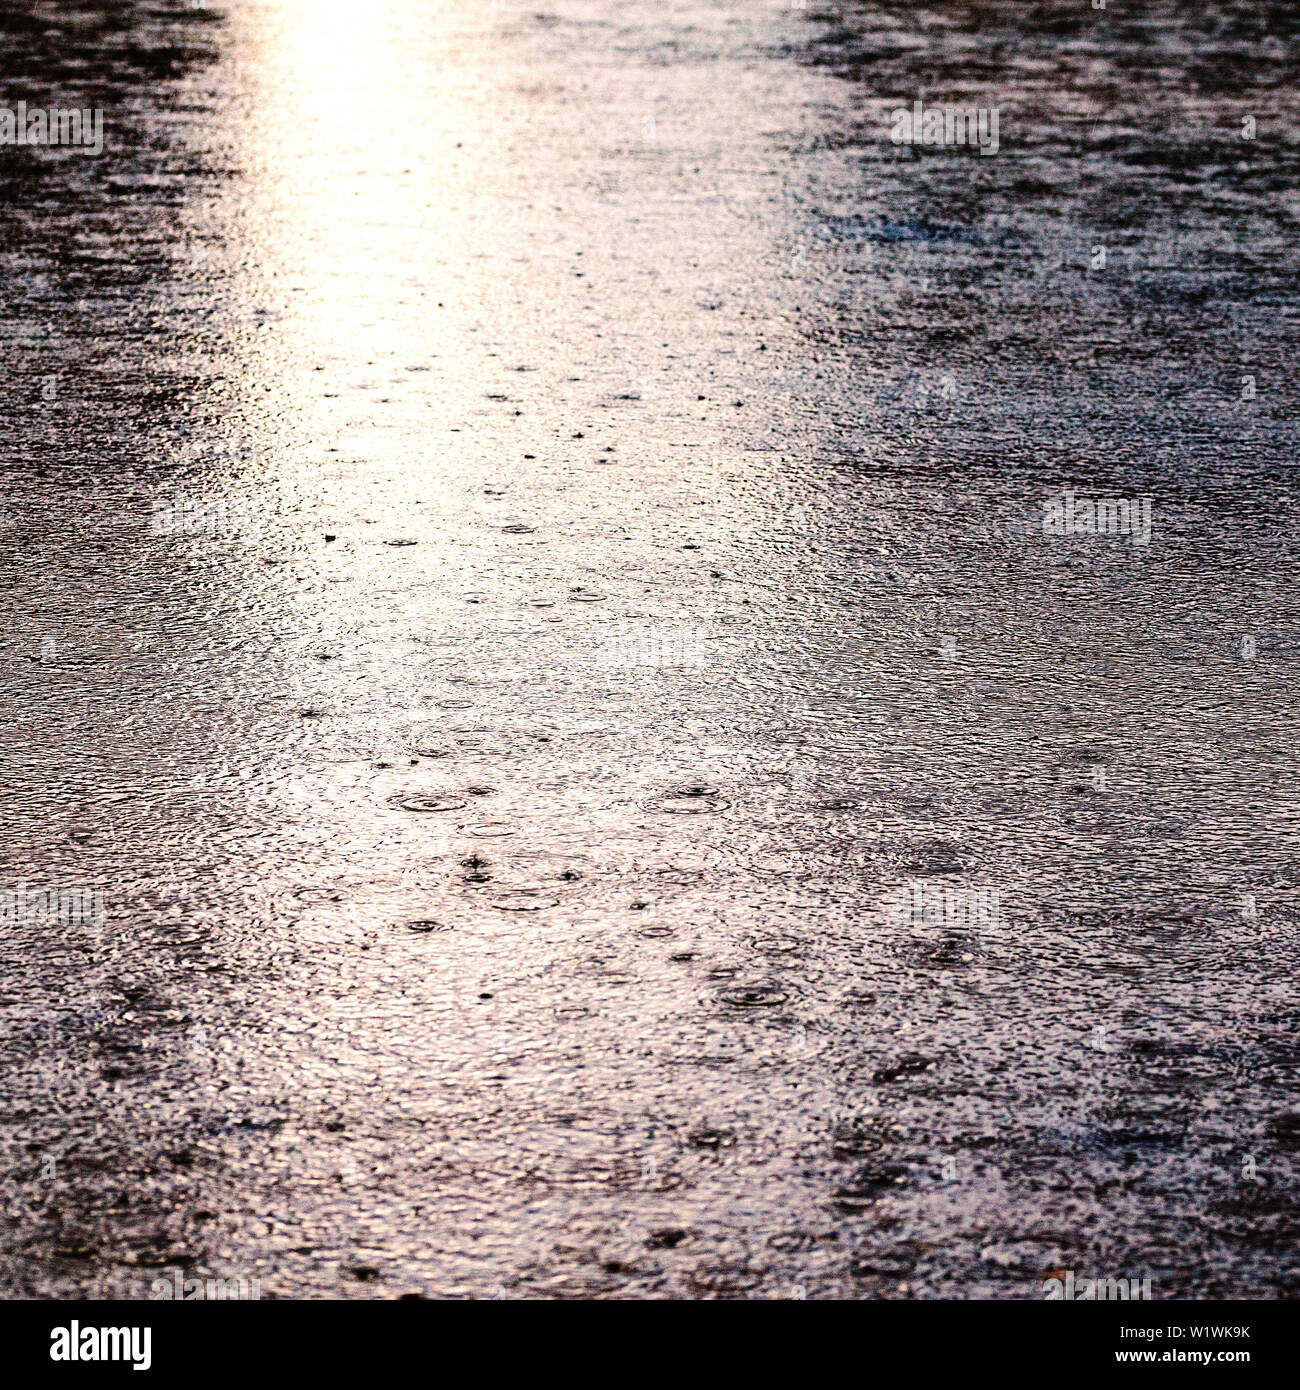 Rain drops on the surface of water in a puddle. Rainy day. Stock Photo